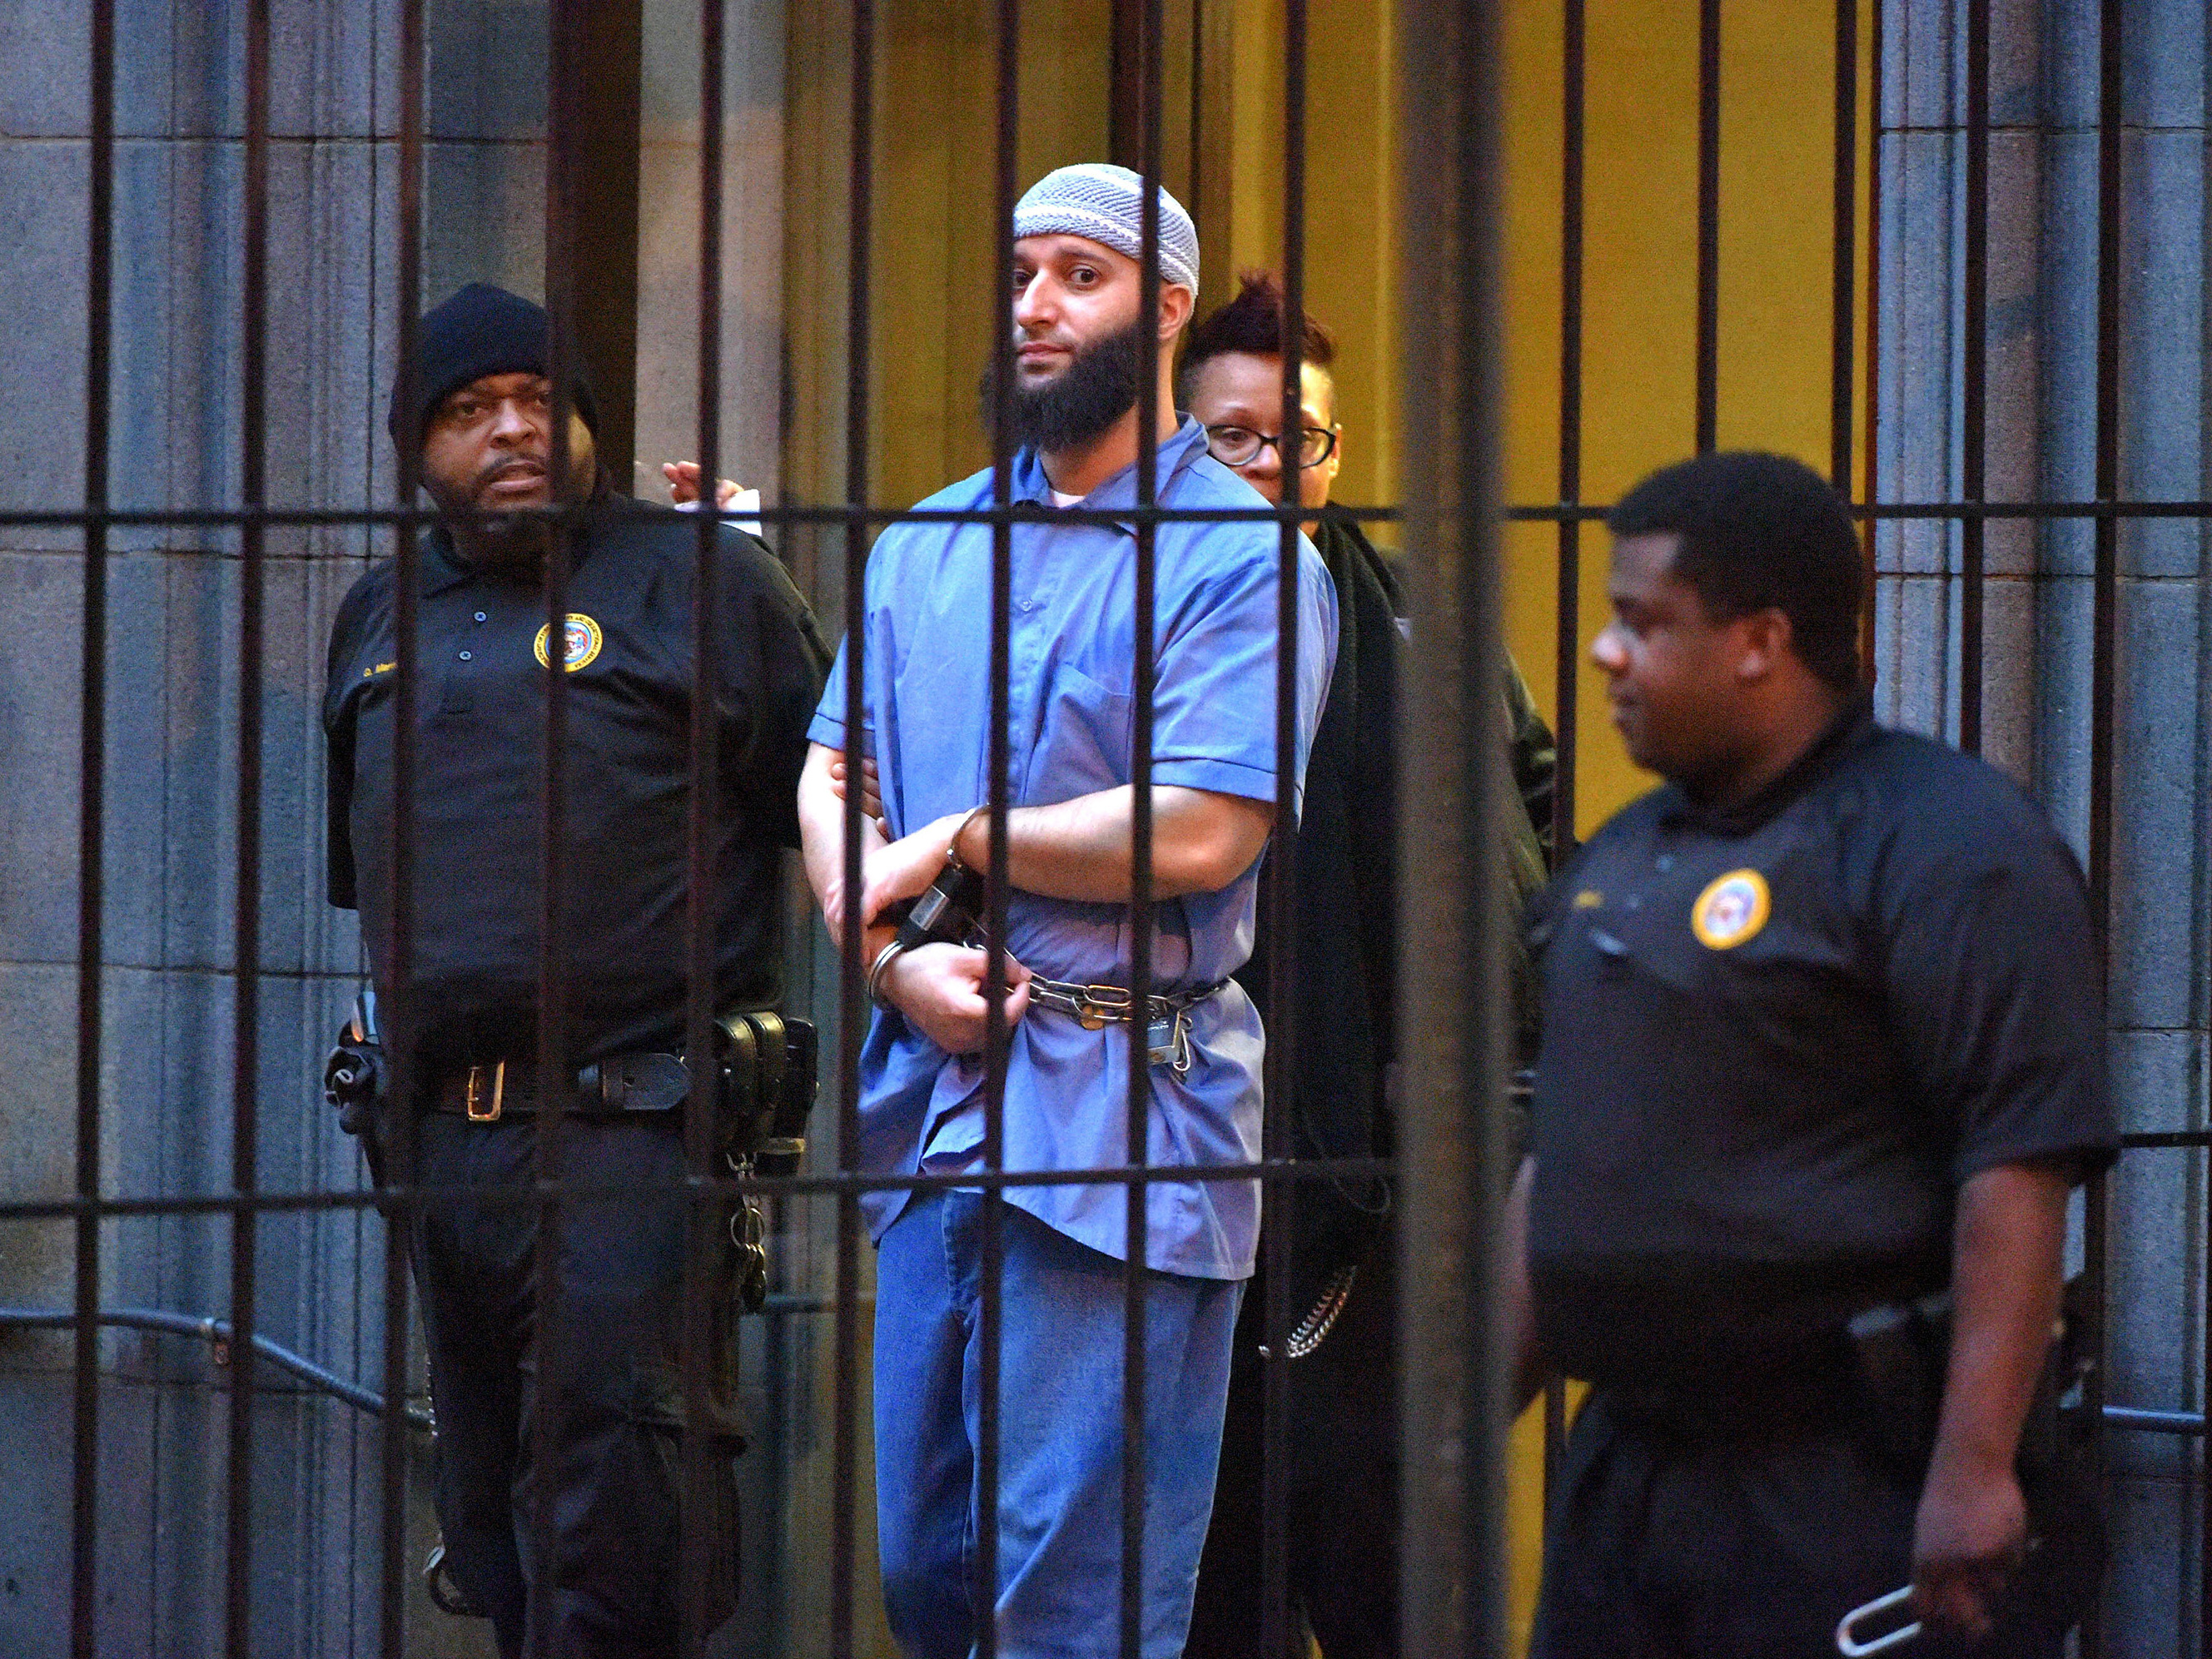 Judge denies bail for 'Serial' podcast phenom Adnan Syed